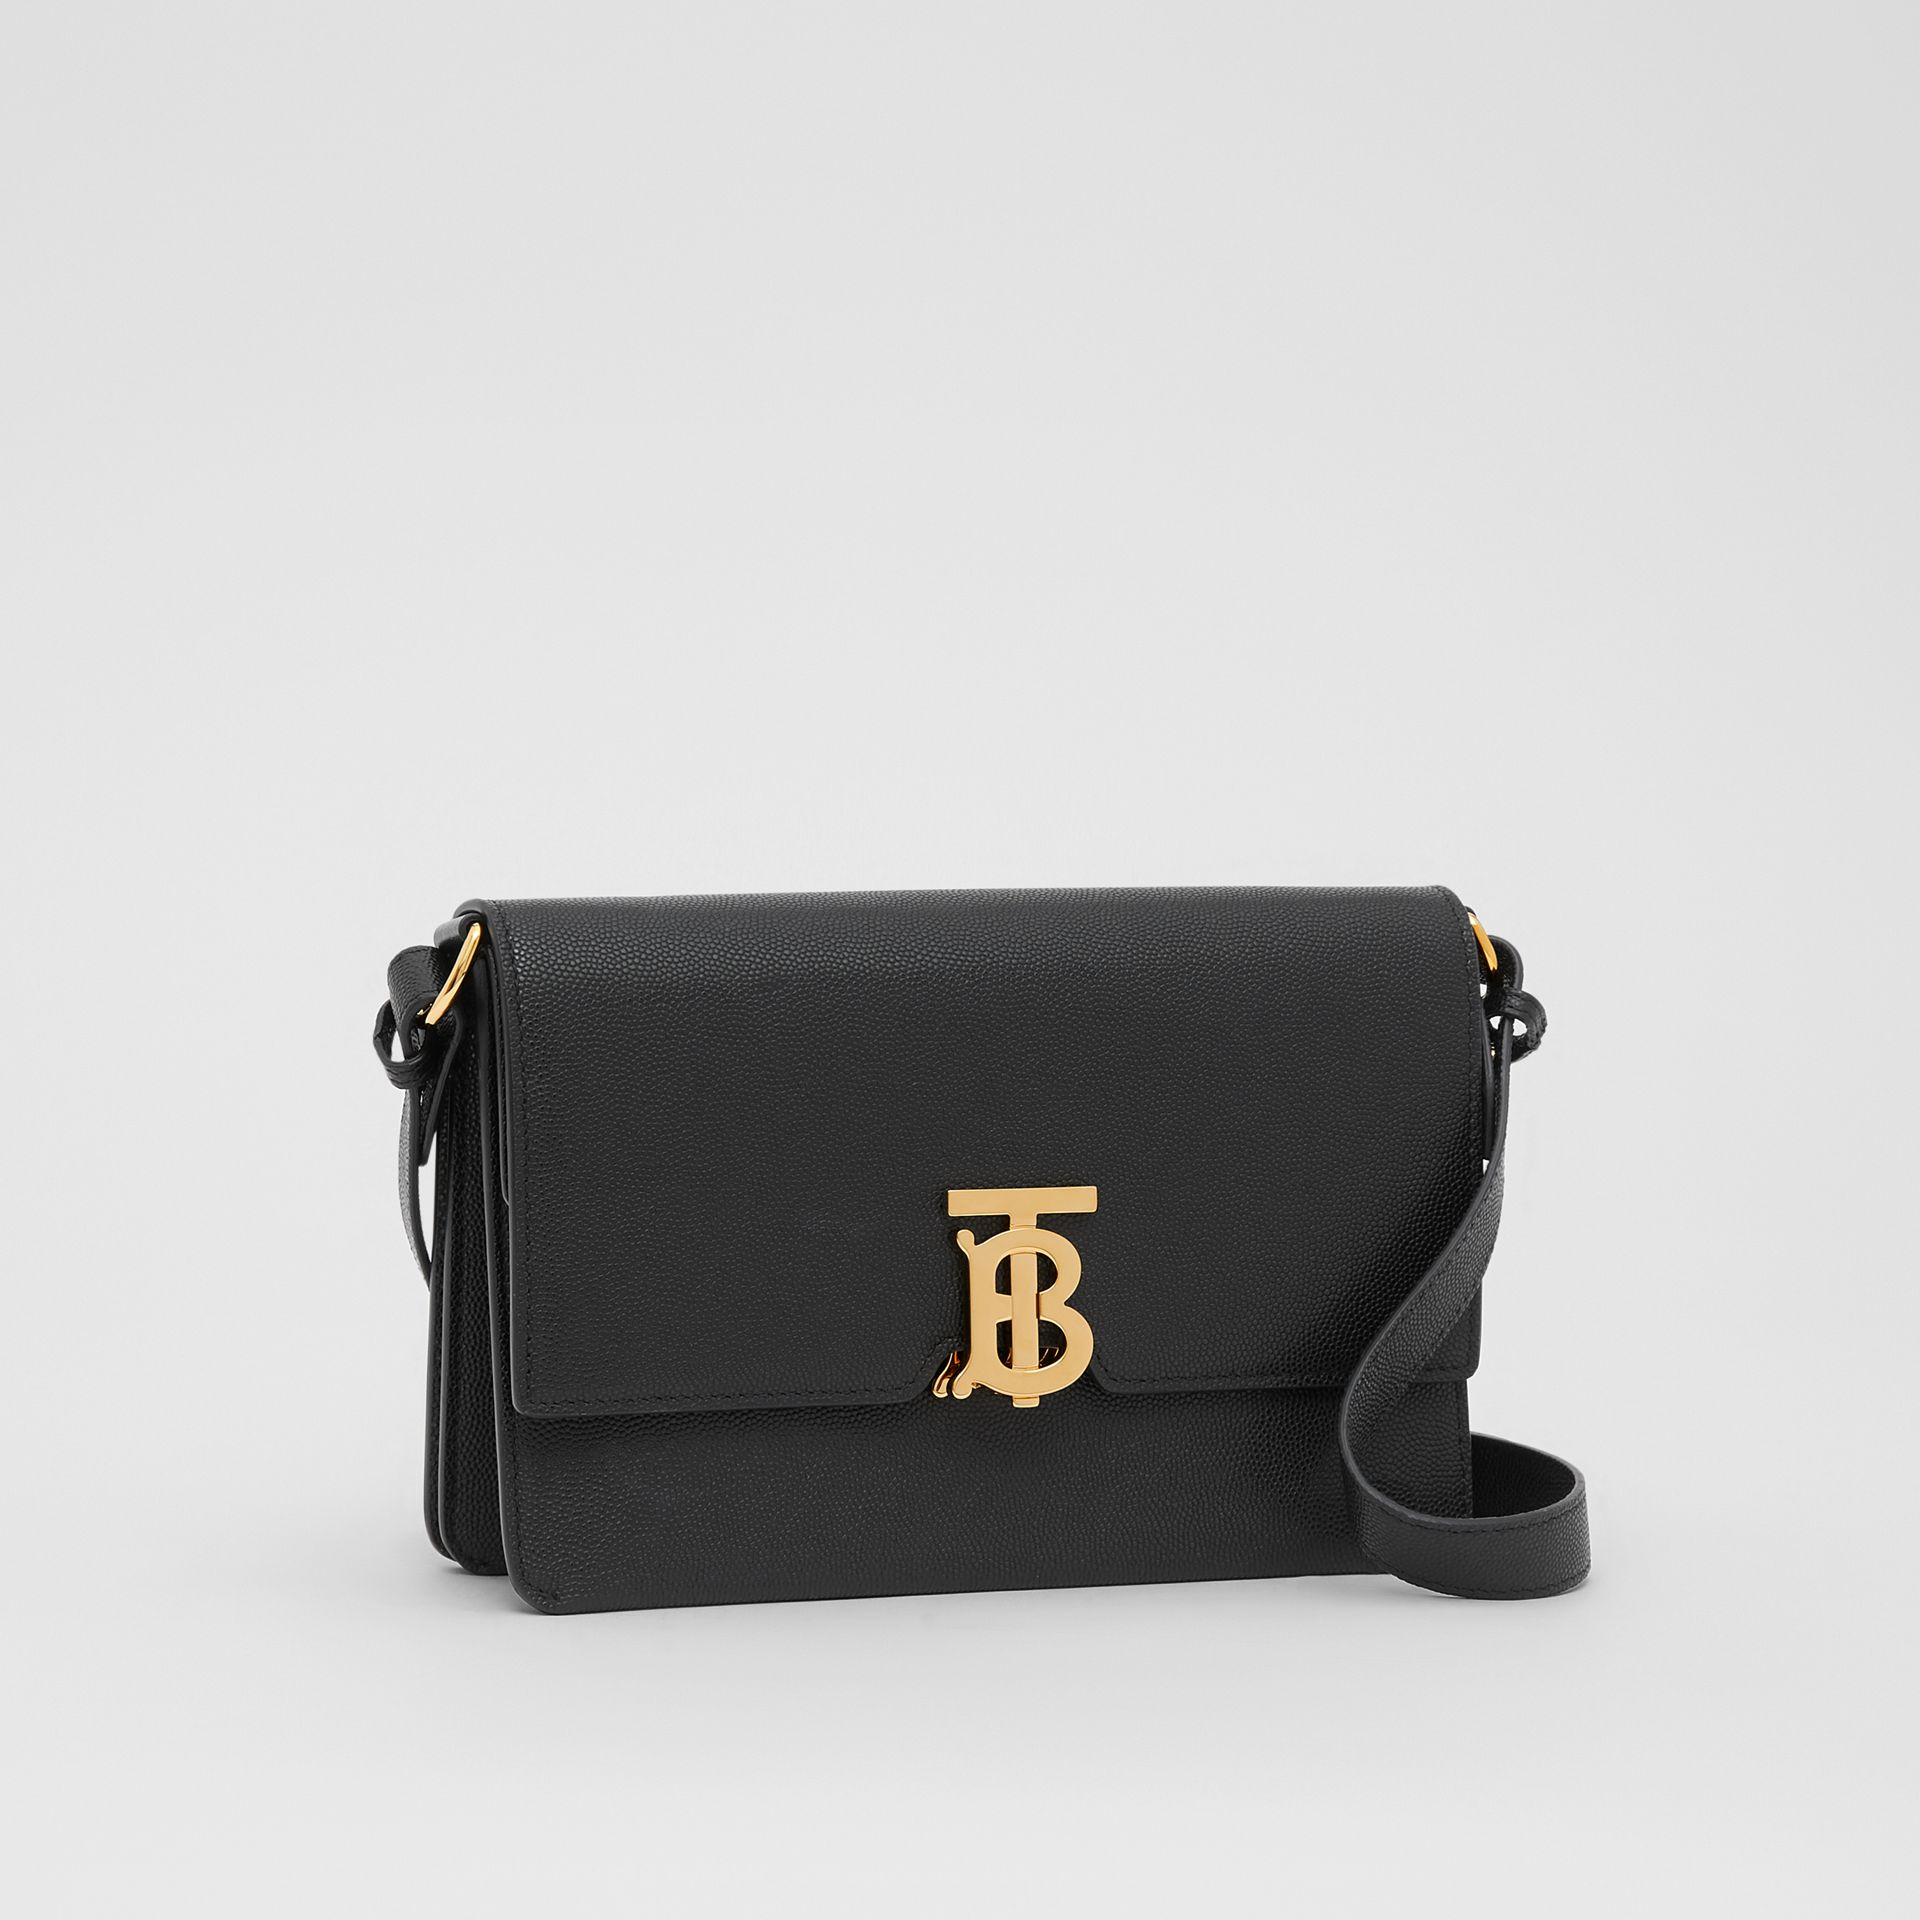 Small Monogram Motif Leather Crossbody Bag in Black - Women | Burberry United Kingdom - gallery image 6